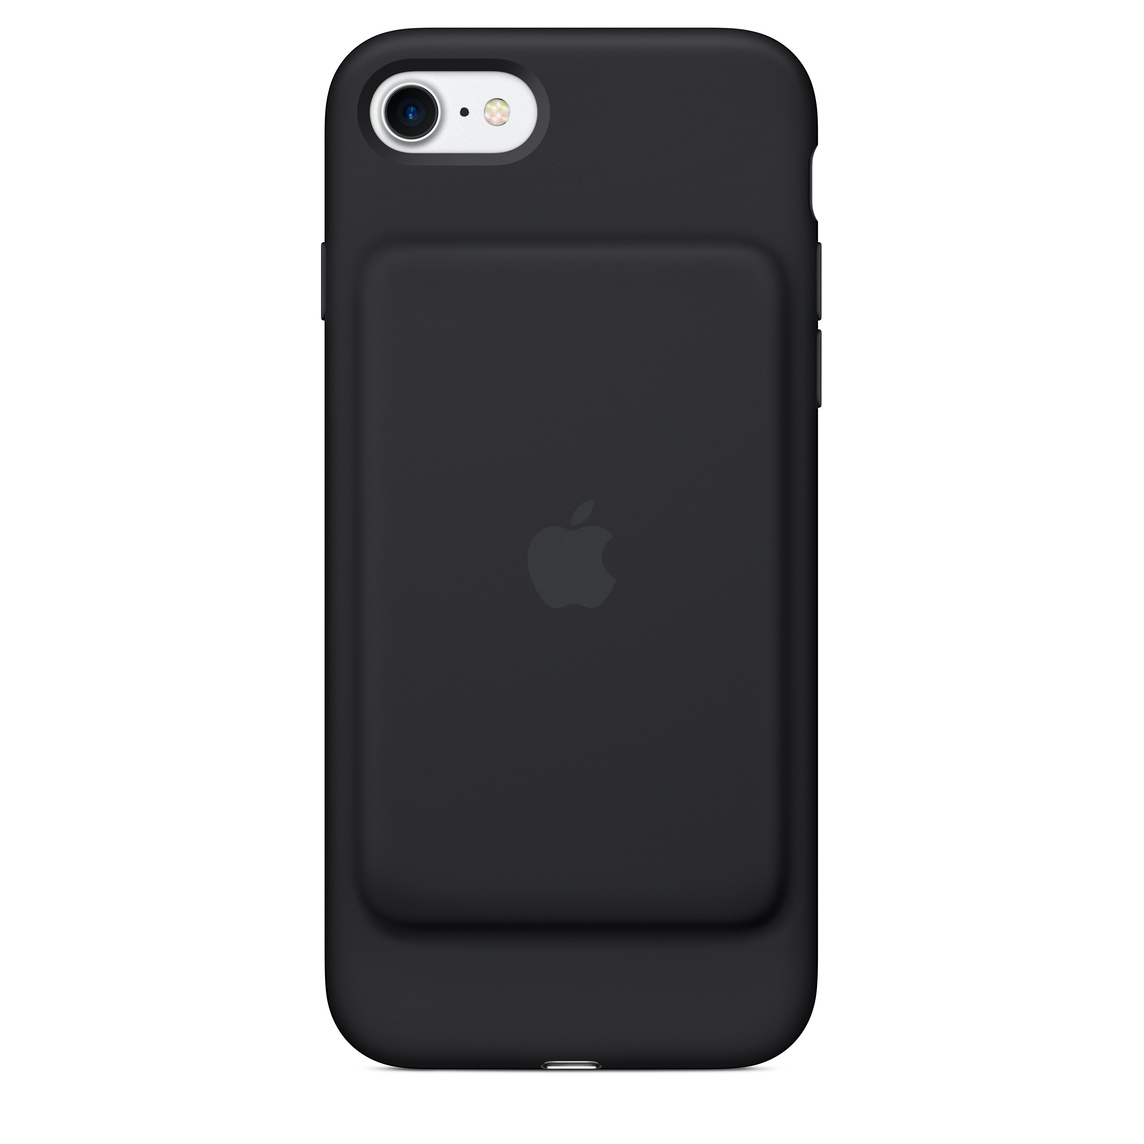 the best attitude 7322c 1cdb3 iPhone 7 Smart Battery Case - Black